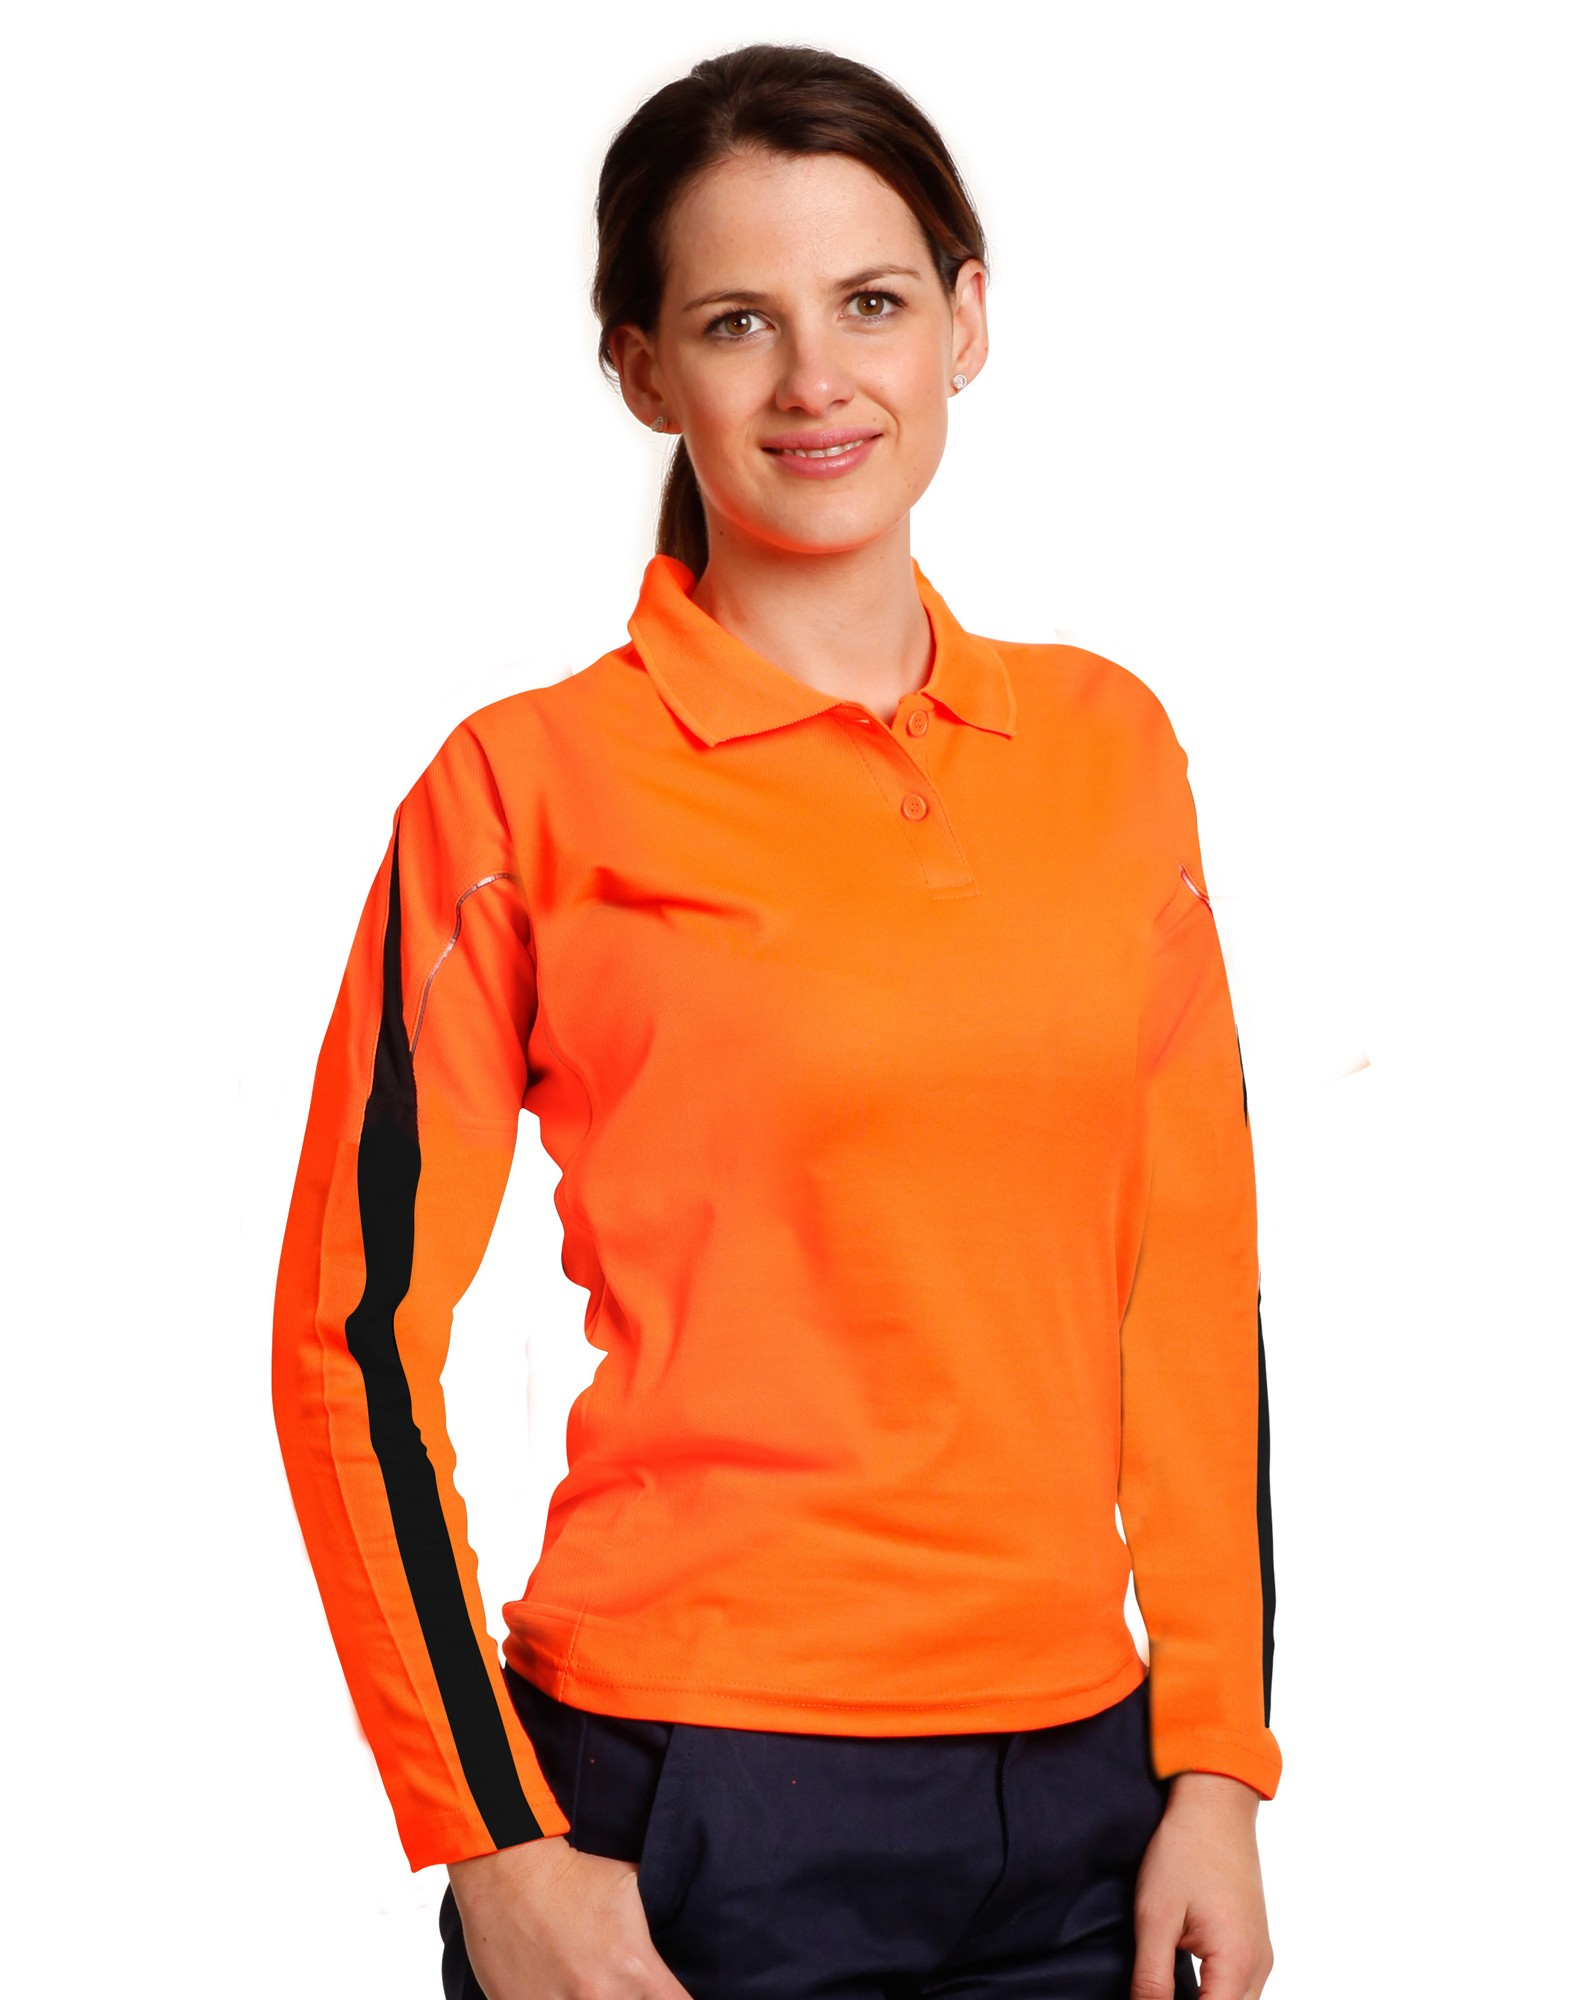 Ladies'  Hi-Vis Long Sleeve Polo with Reflective Piping